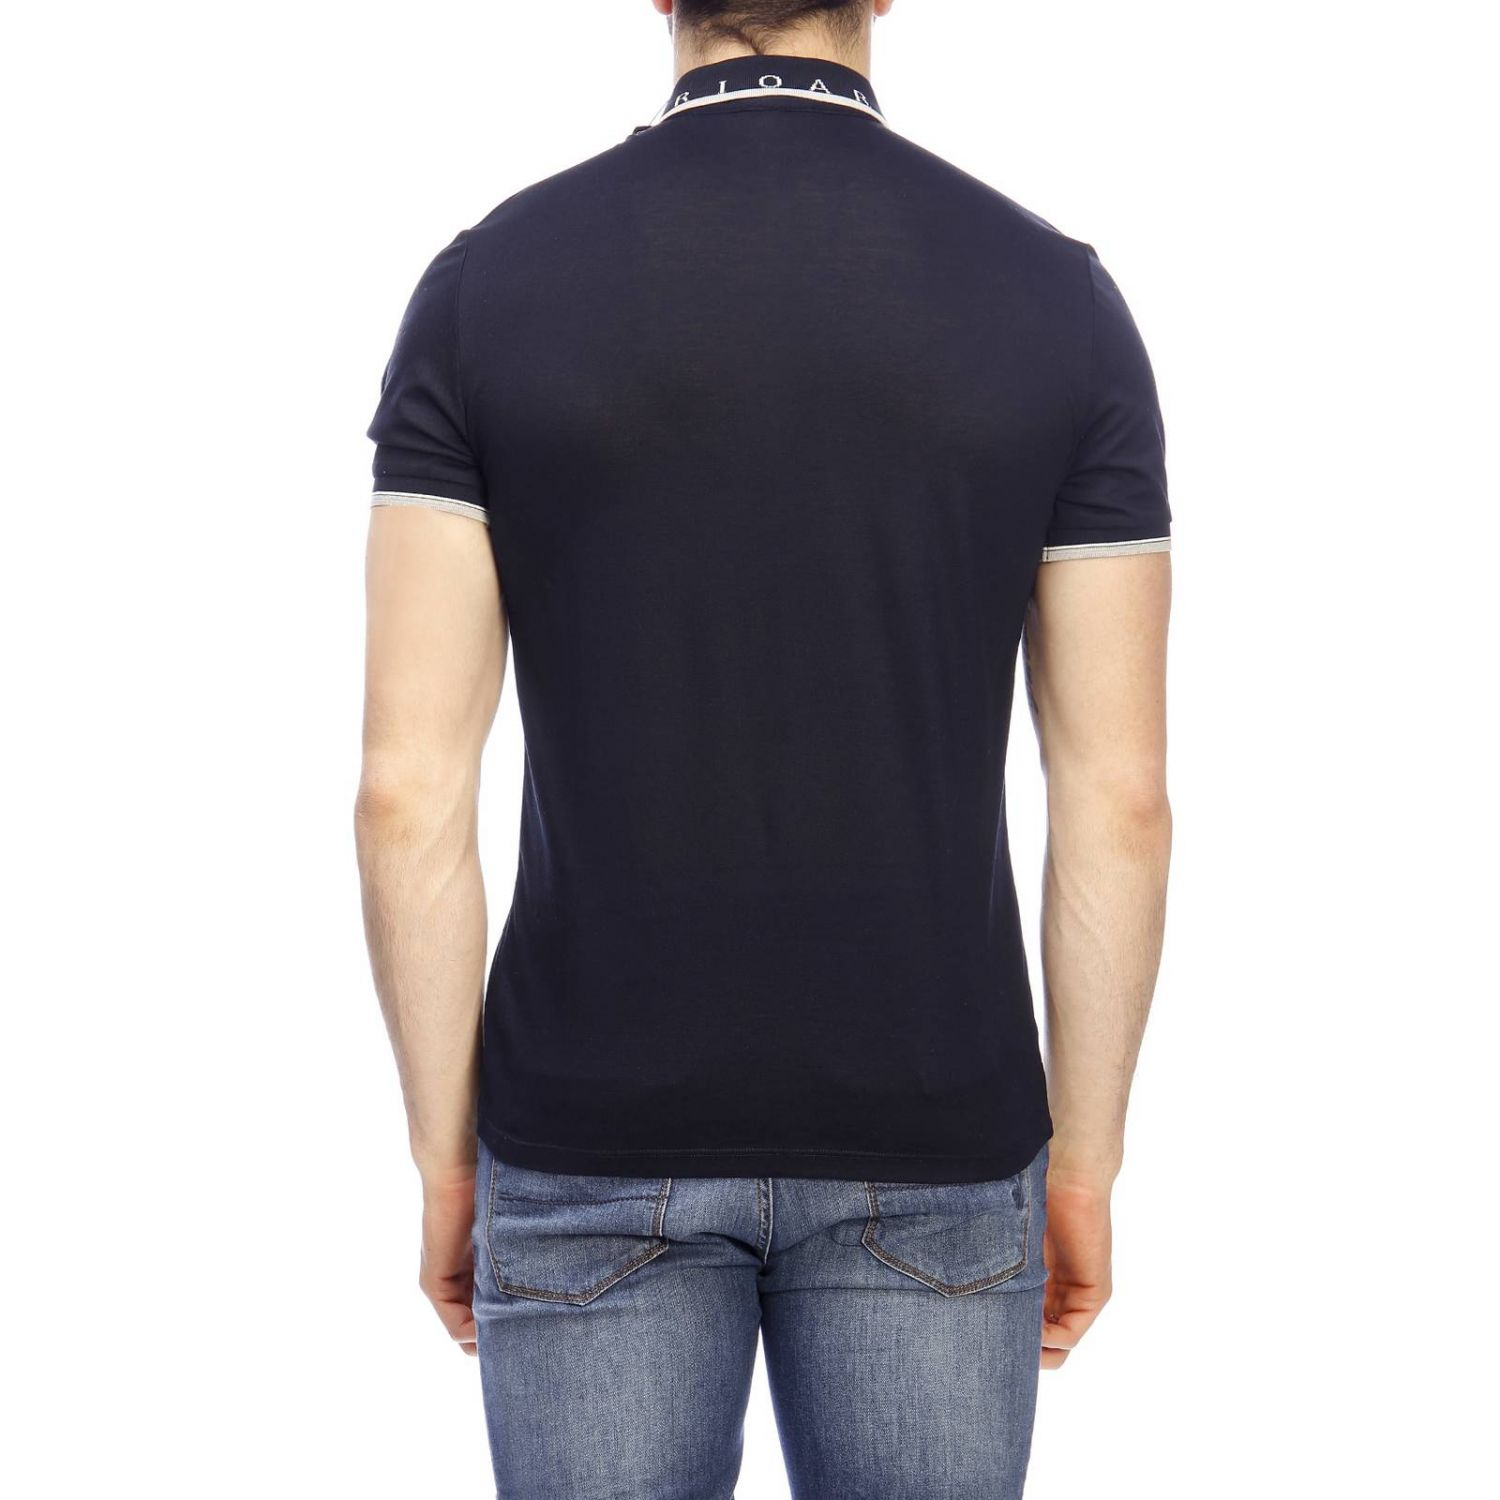 Sweater men Emporio Armani navy 3